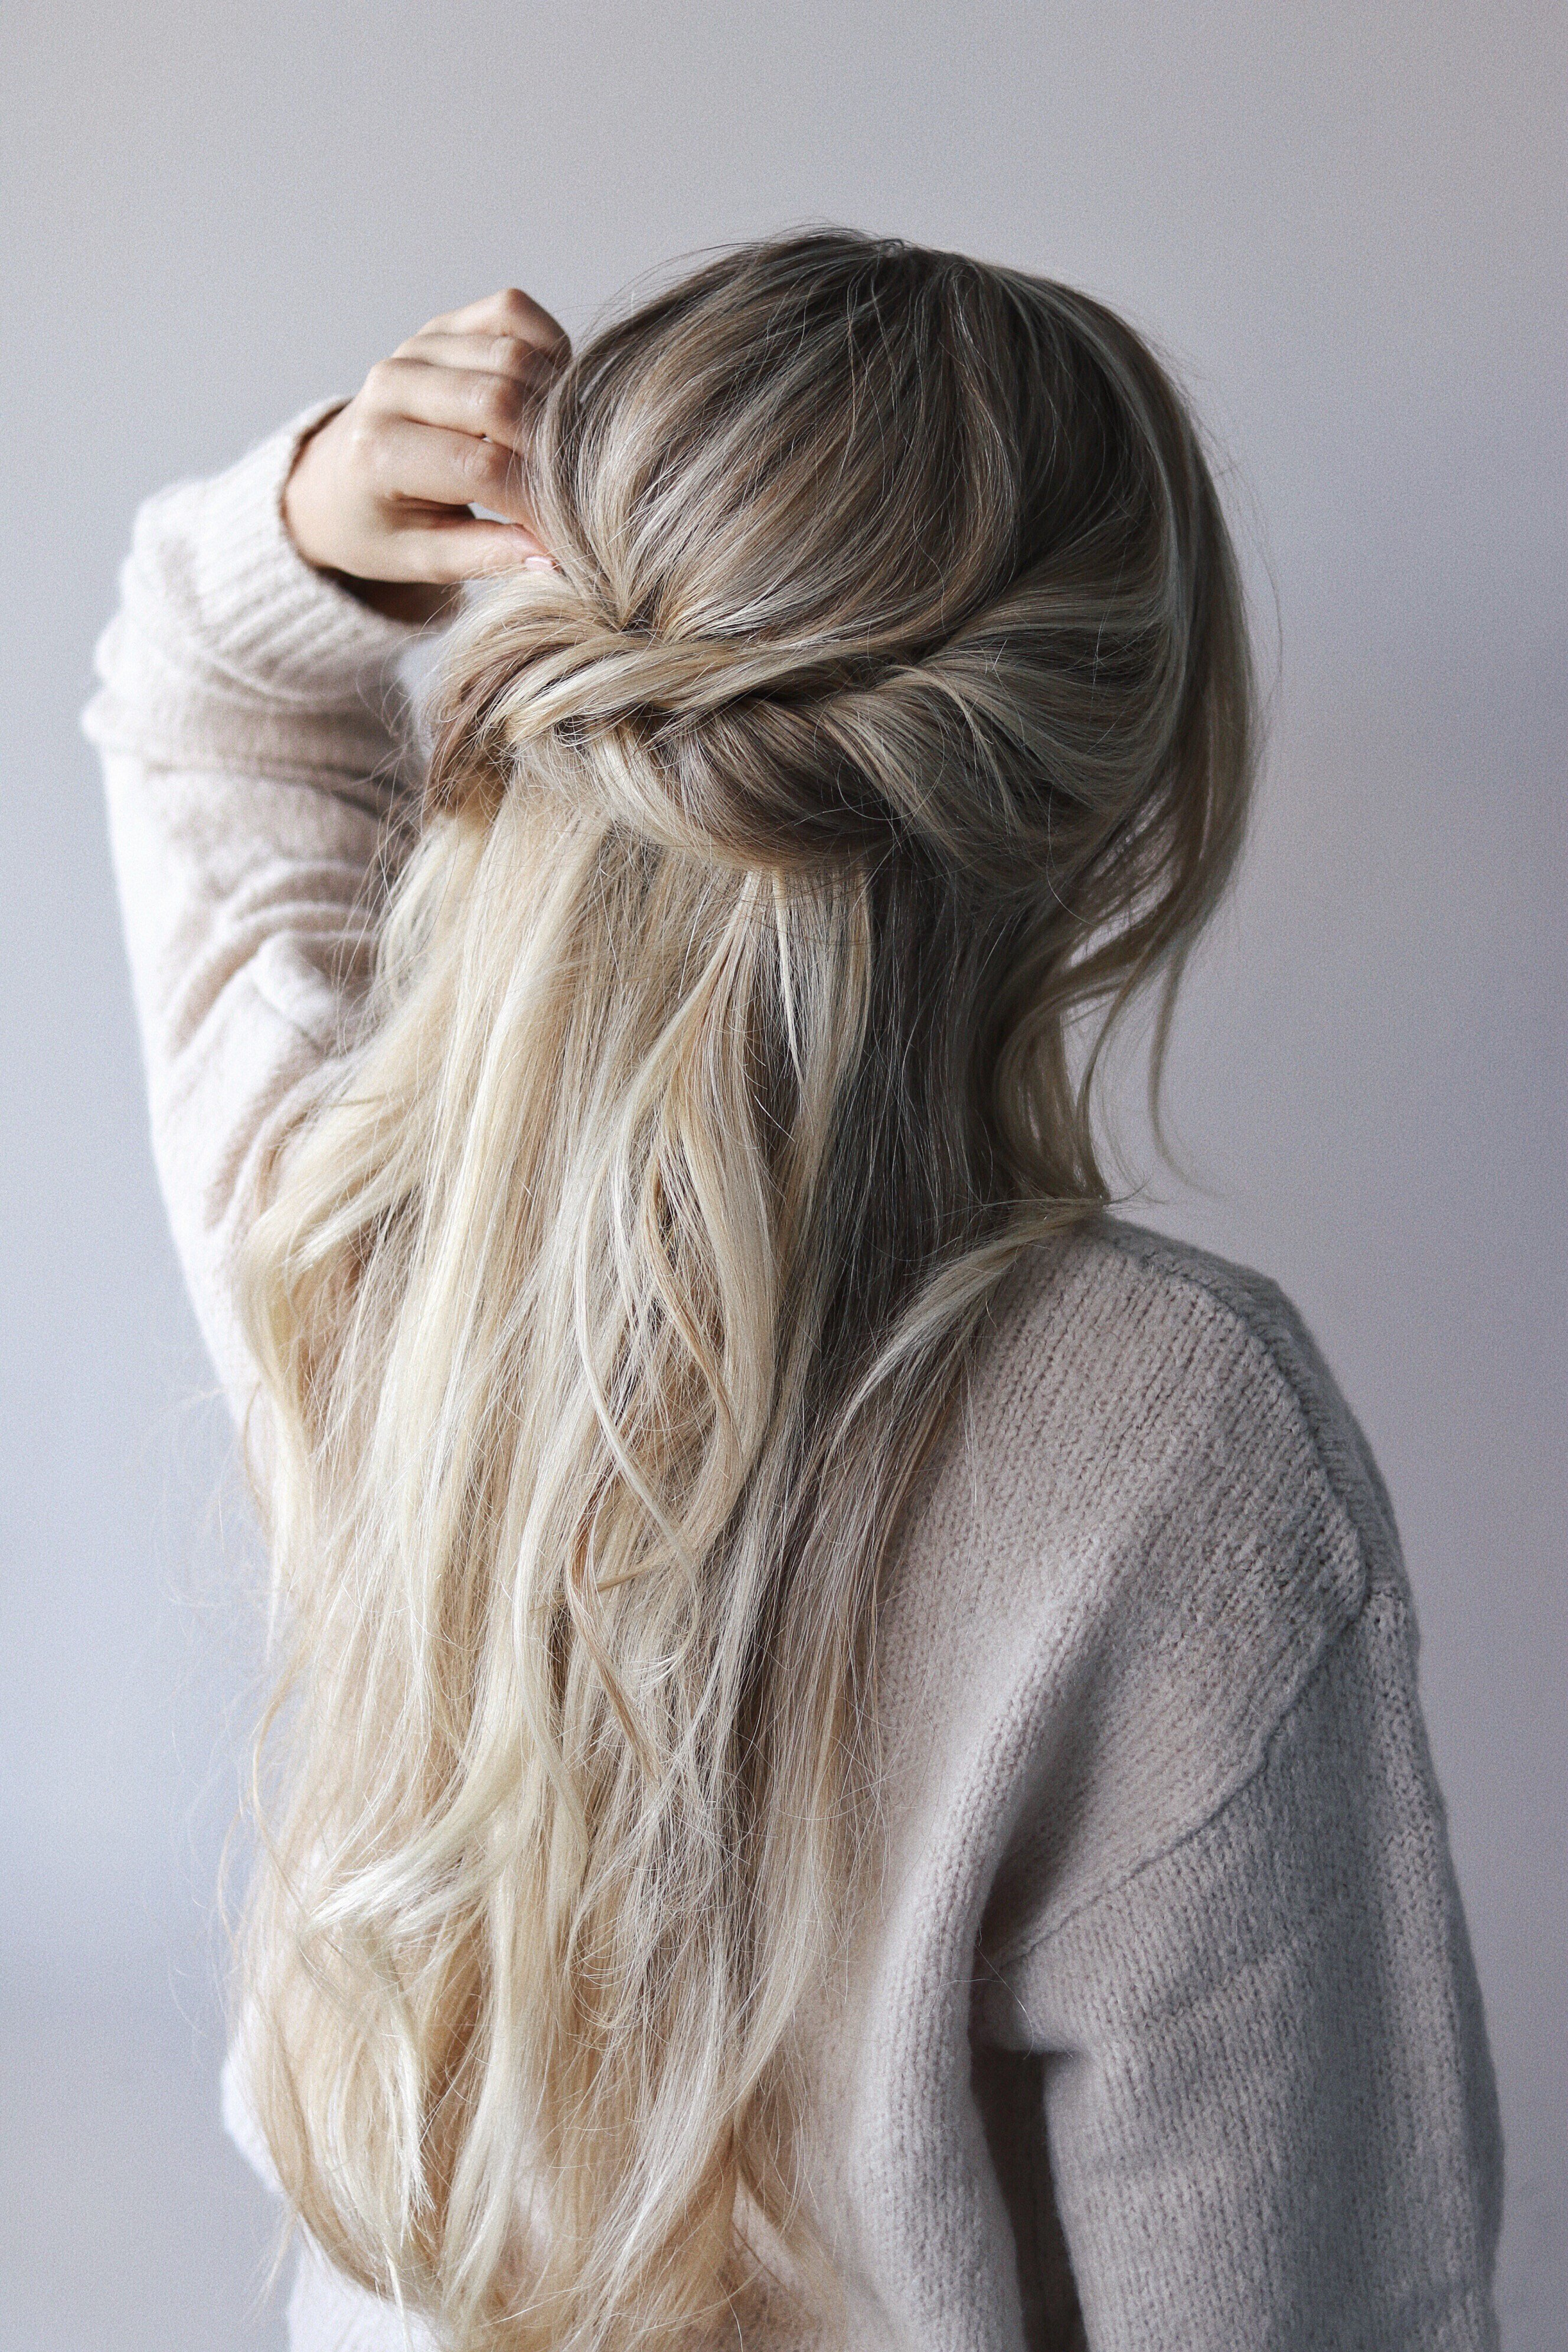 The Best Easy Fall Hairstyles Hair Trends 2018 Alex Gaboury Pictures